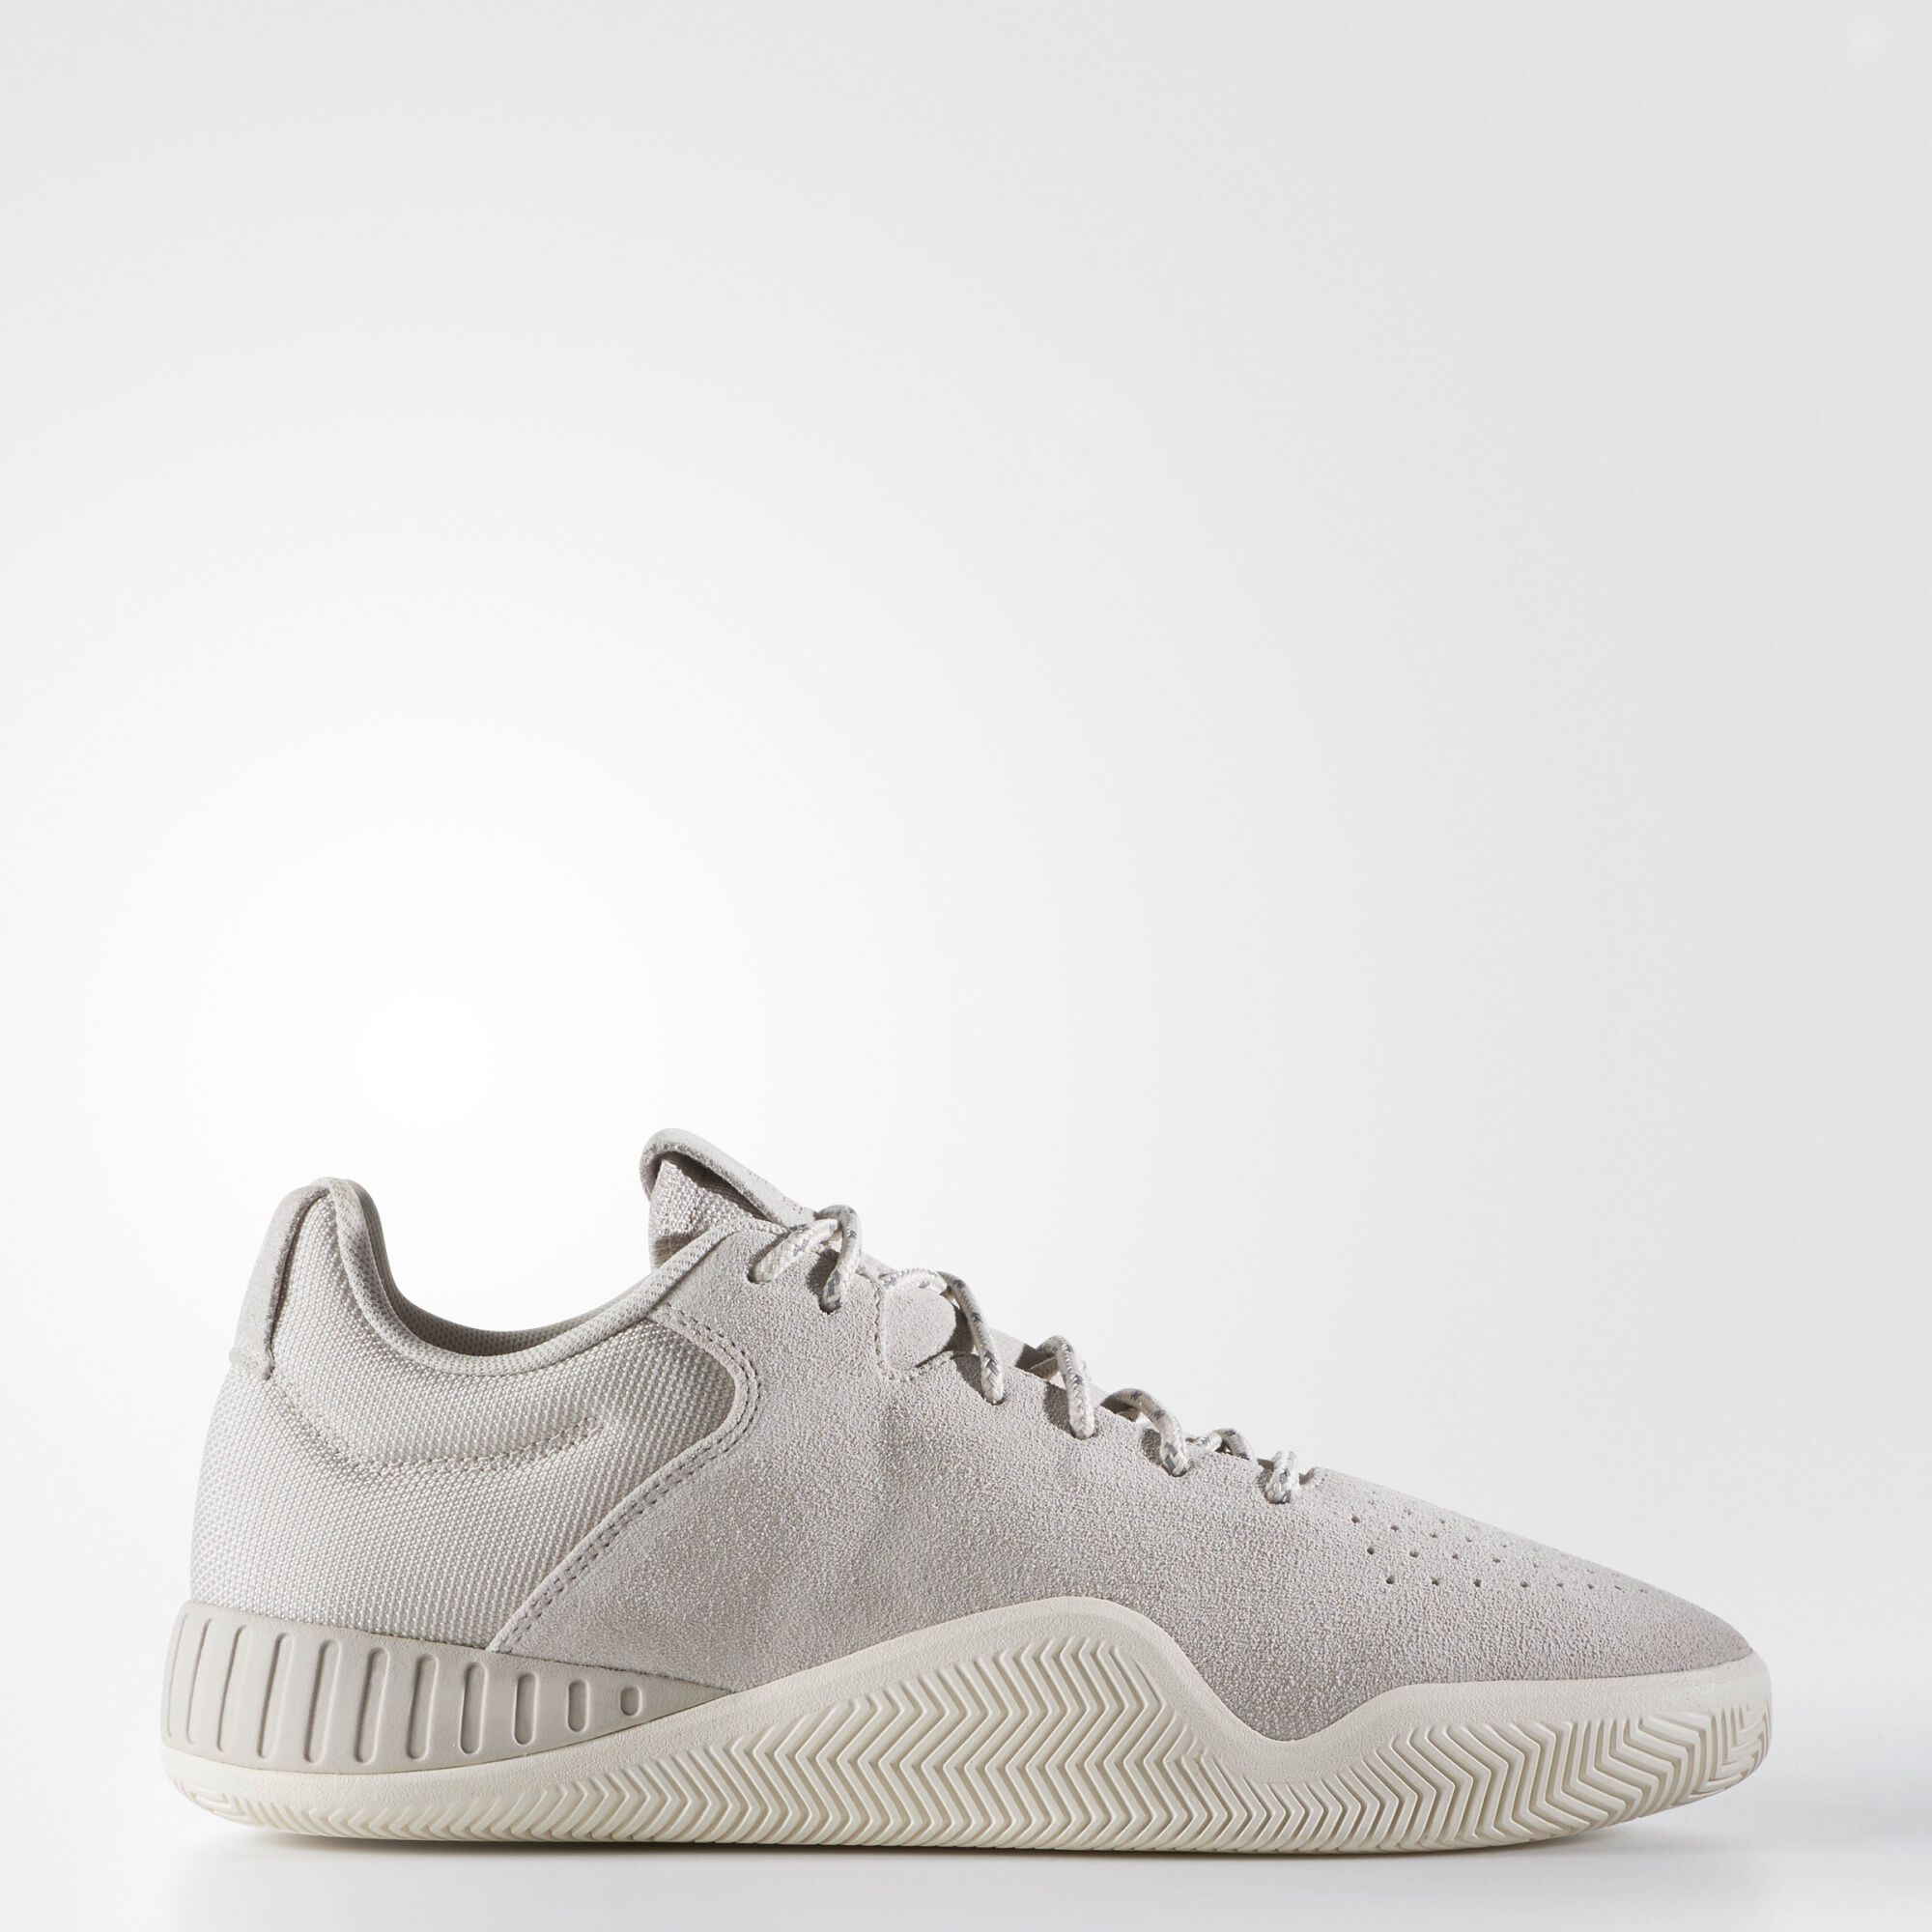 Adidas Tubular Nova (Vintage White \\ u0026 Cream White) End